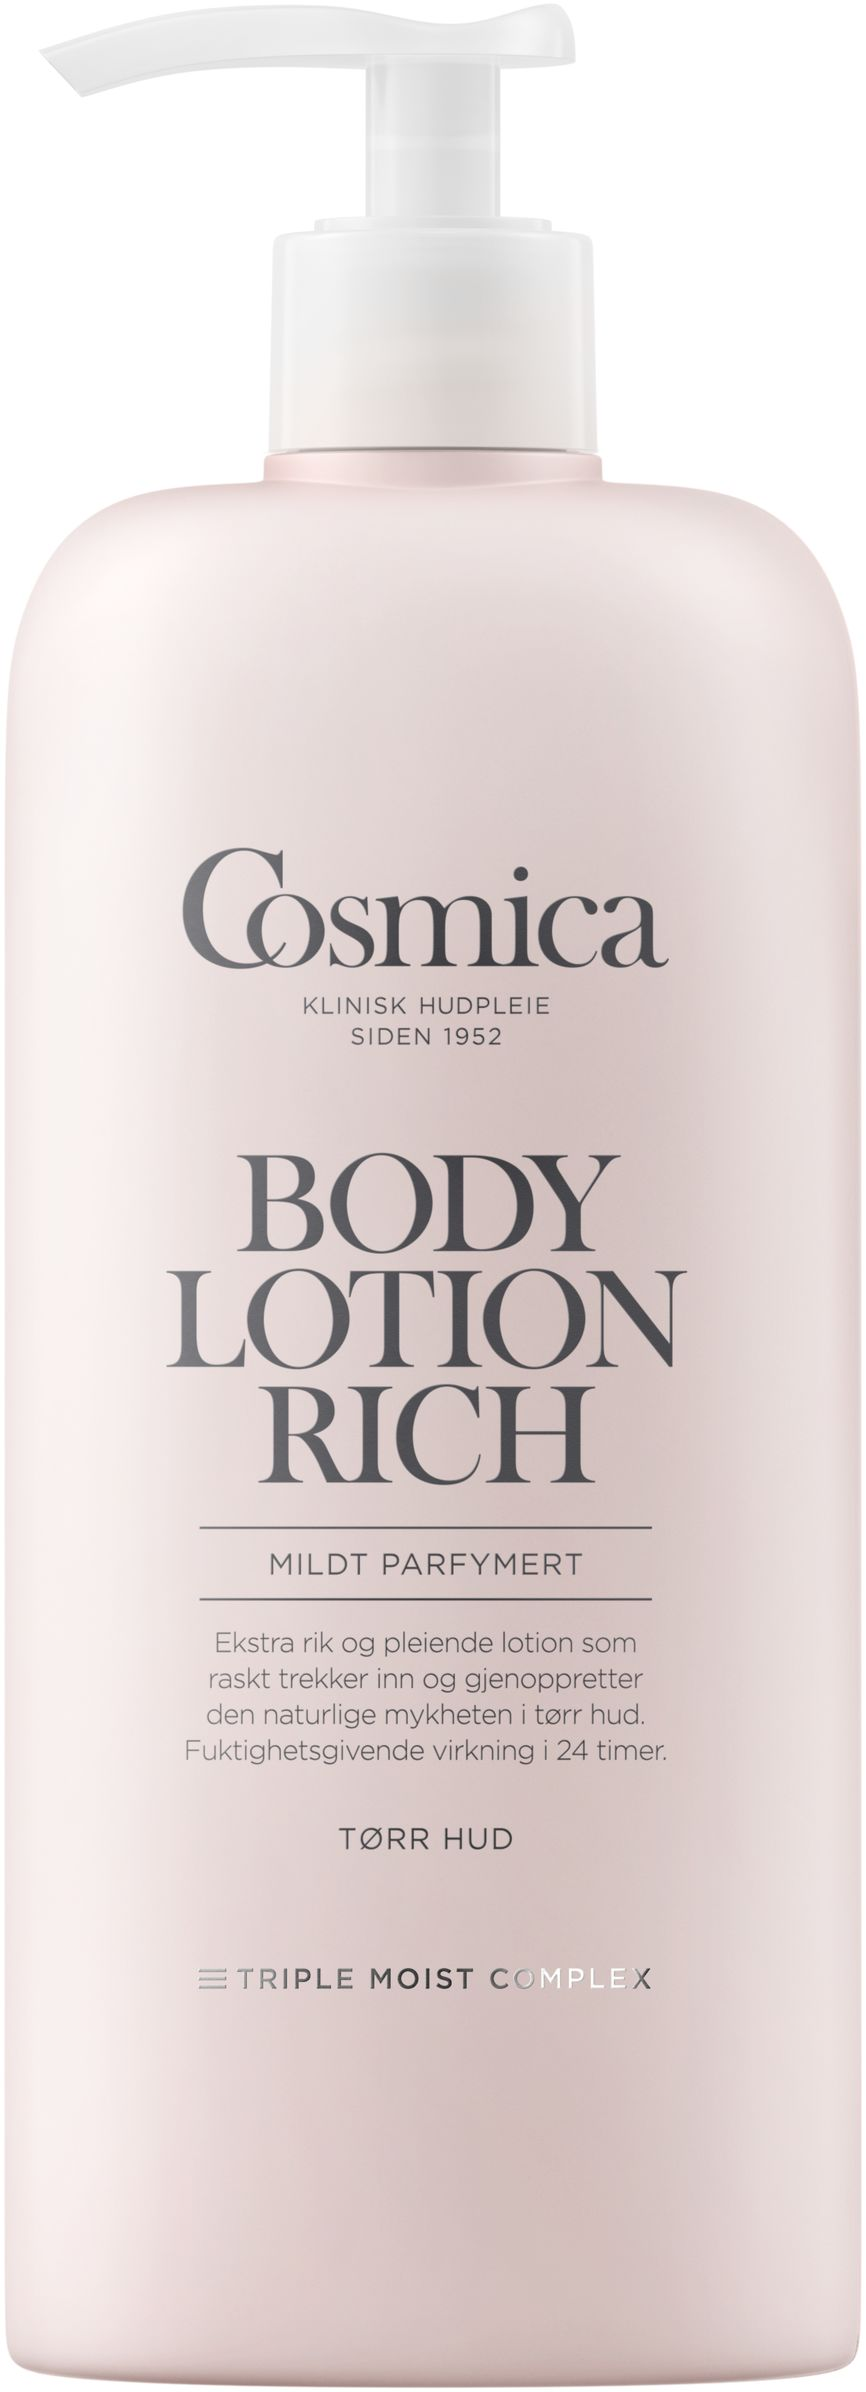 Cosmica Bodylotion Rich med parfyme (400 ml)